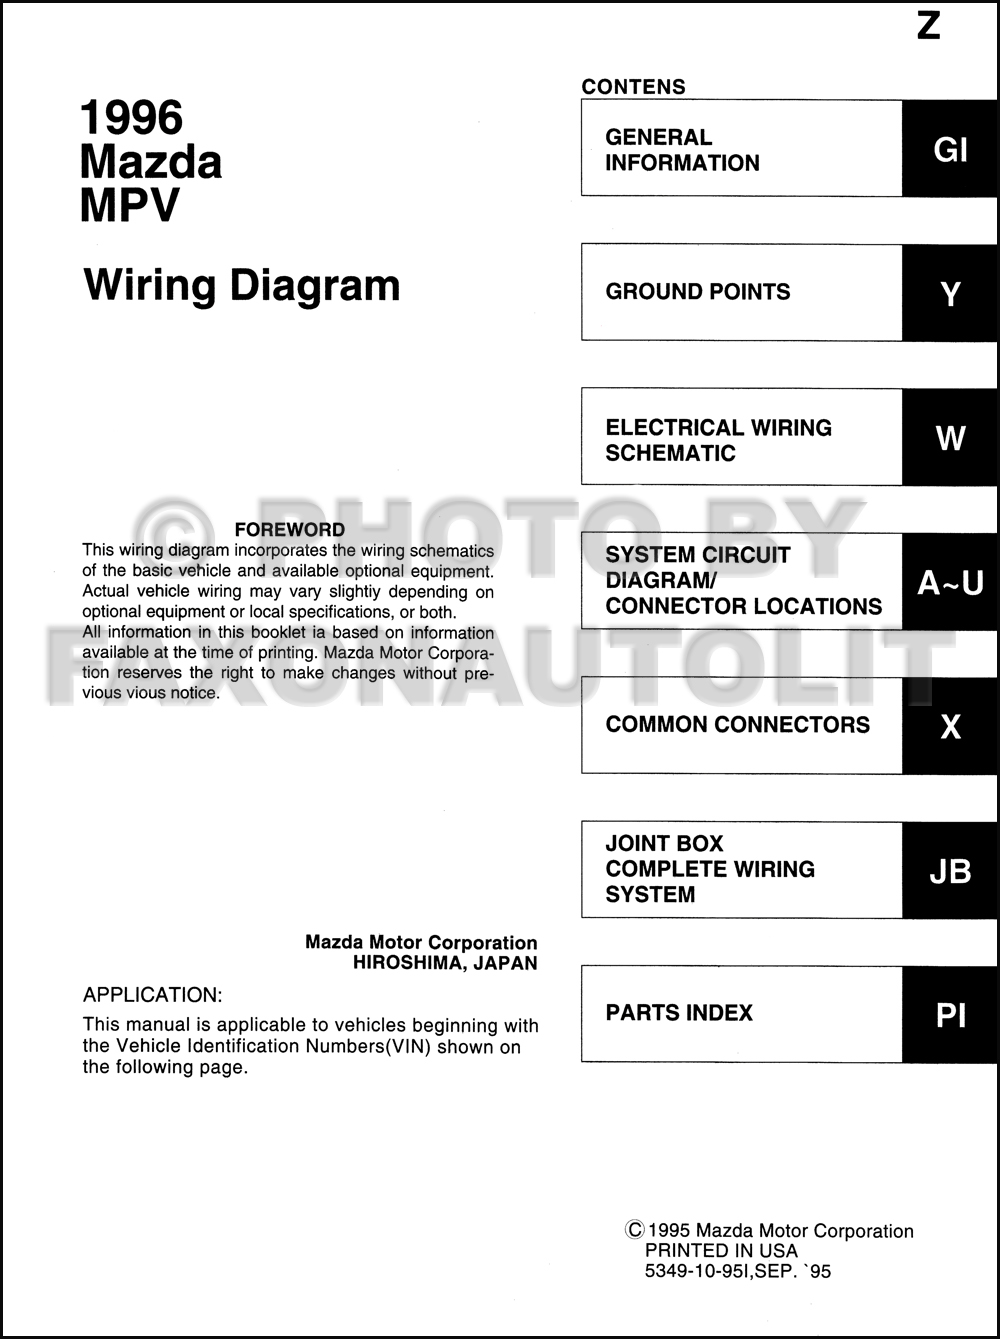 1996 mazda mpv wiring diagram - wiring diagram south -  south.tartufoavaltopina.it  tartufoavaltopina.it